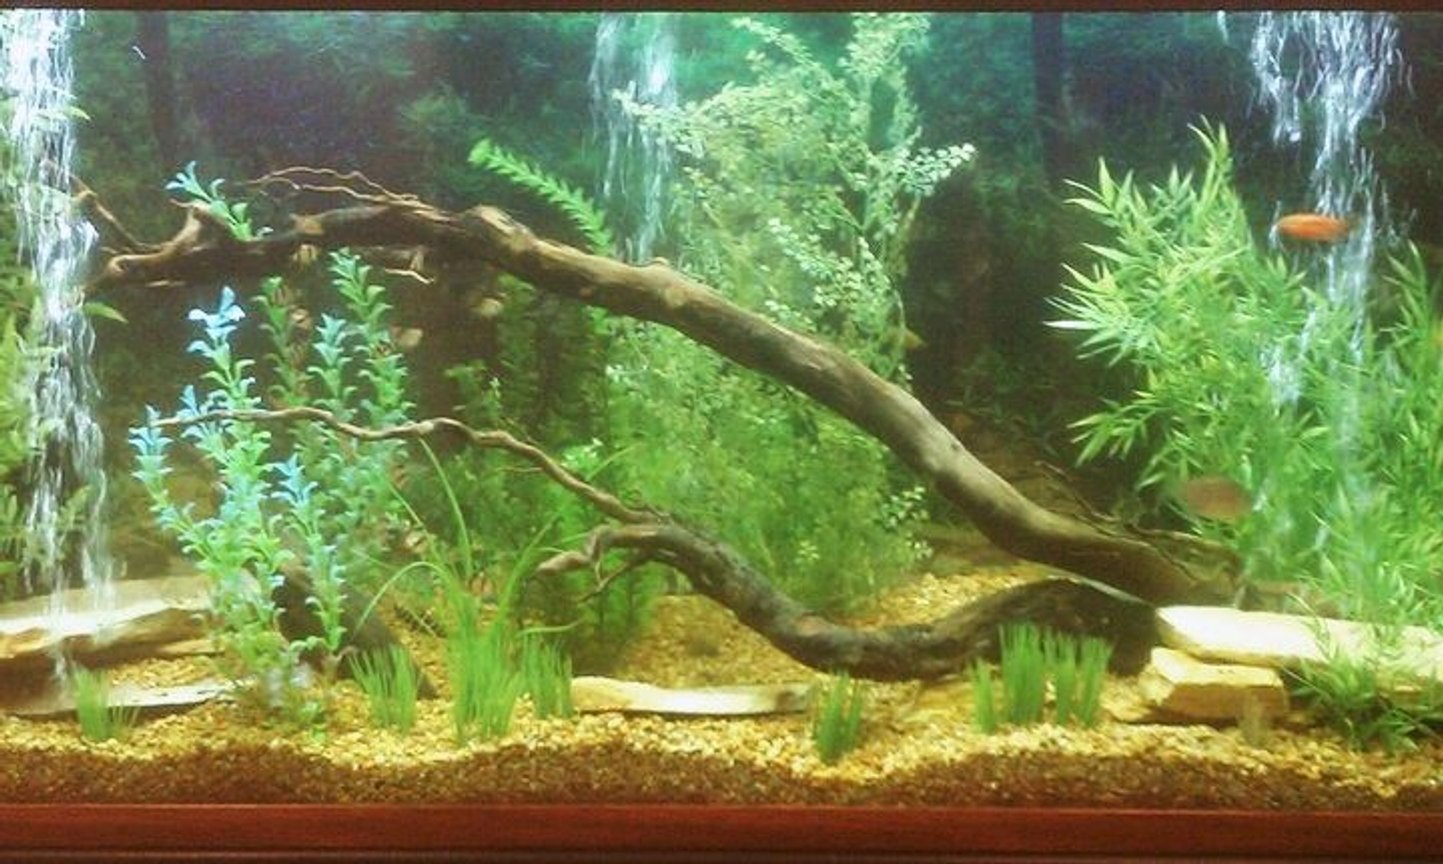 150 gallons freshwater fish tank (mostly fish and non-living decorations) - my 150 gallon fish tank